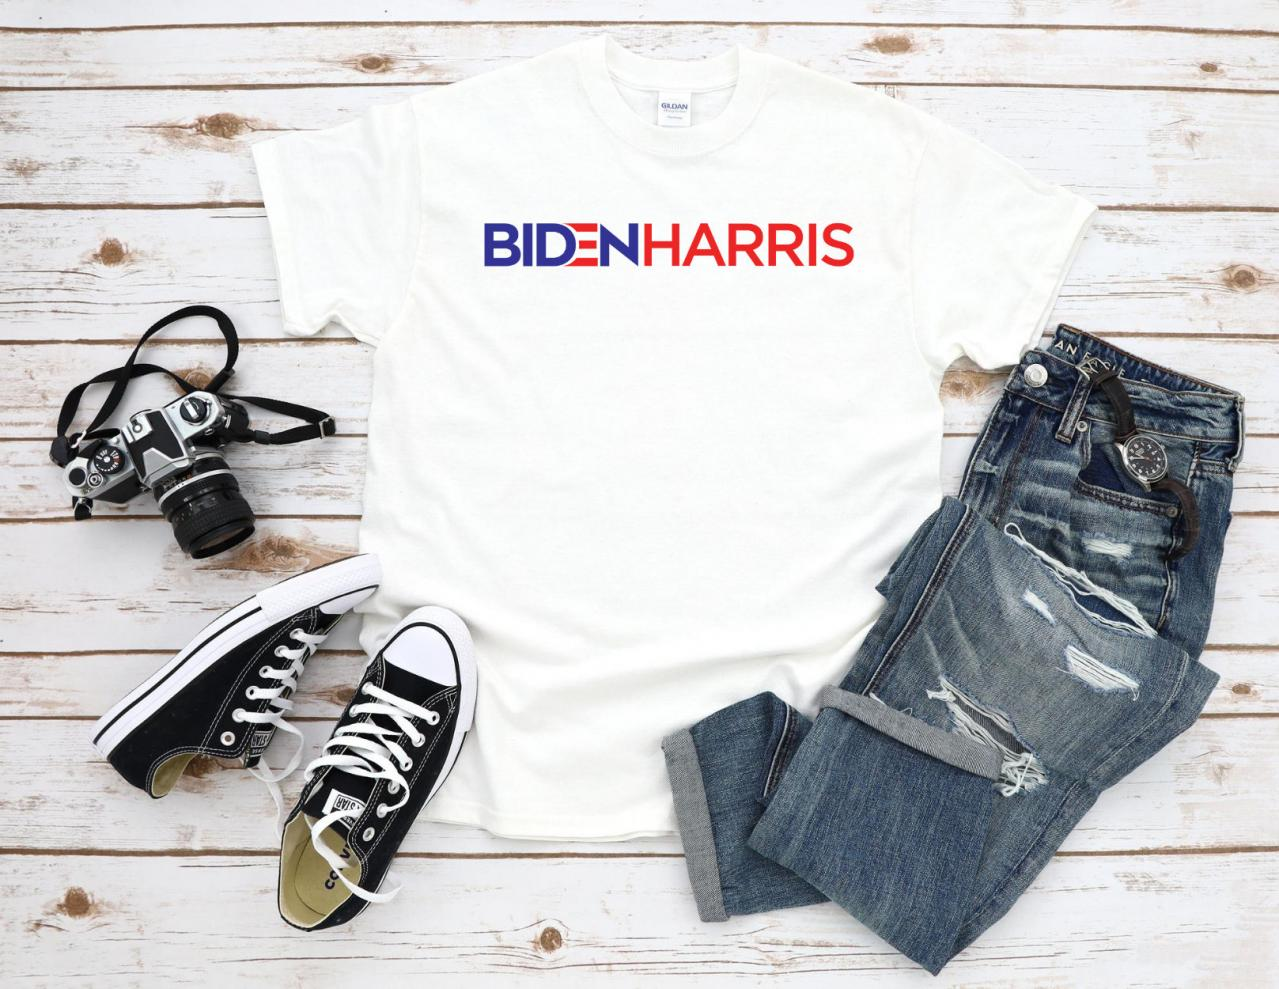 Biden Harris Shirt, 2020 Presidential Election Tshirt, Democratic Party Tee, Adult Unisex Clothing